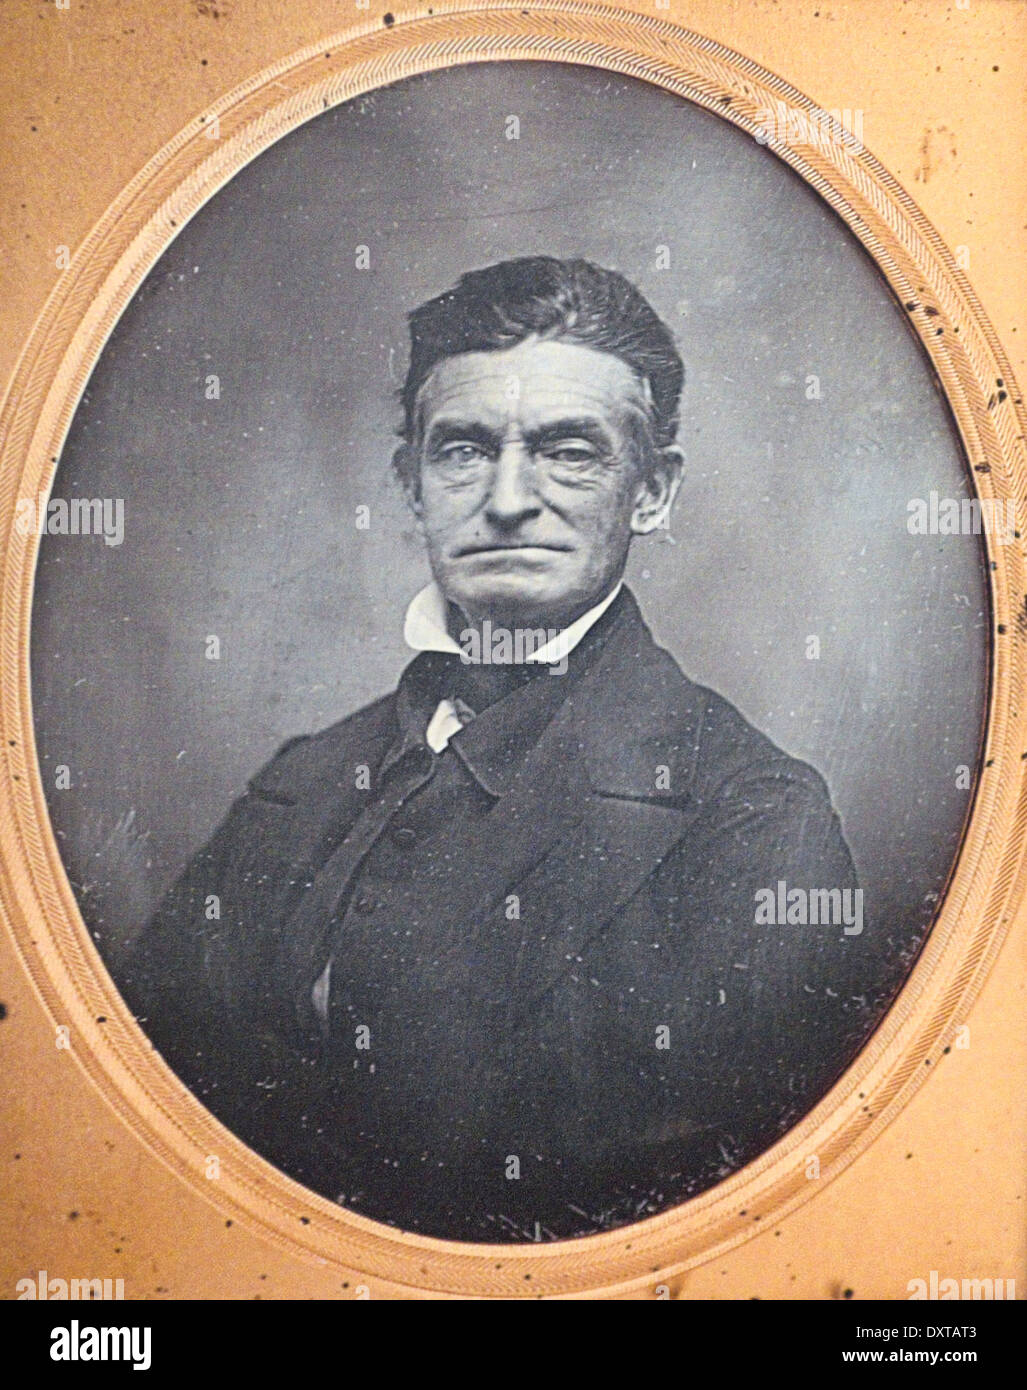 John Brown, American abolitionist, circa 1830 - Stock Image